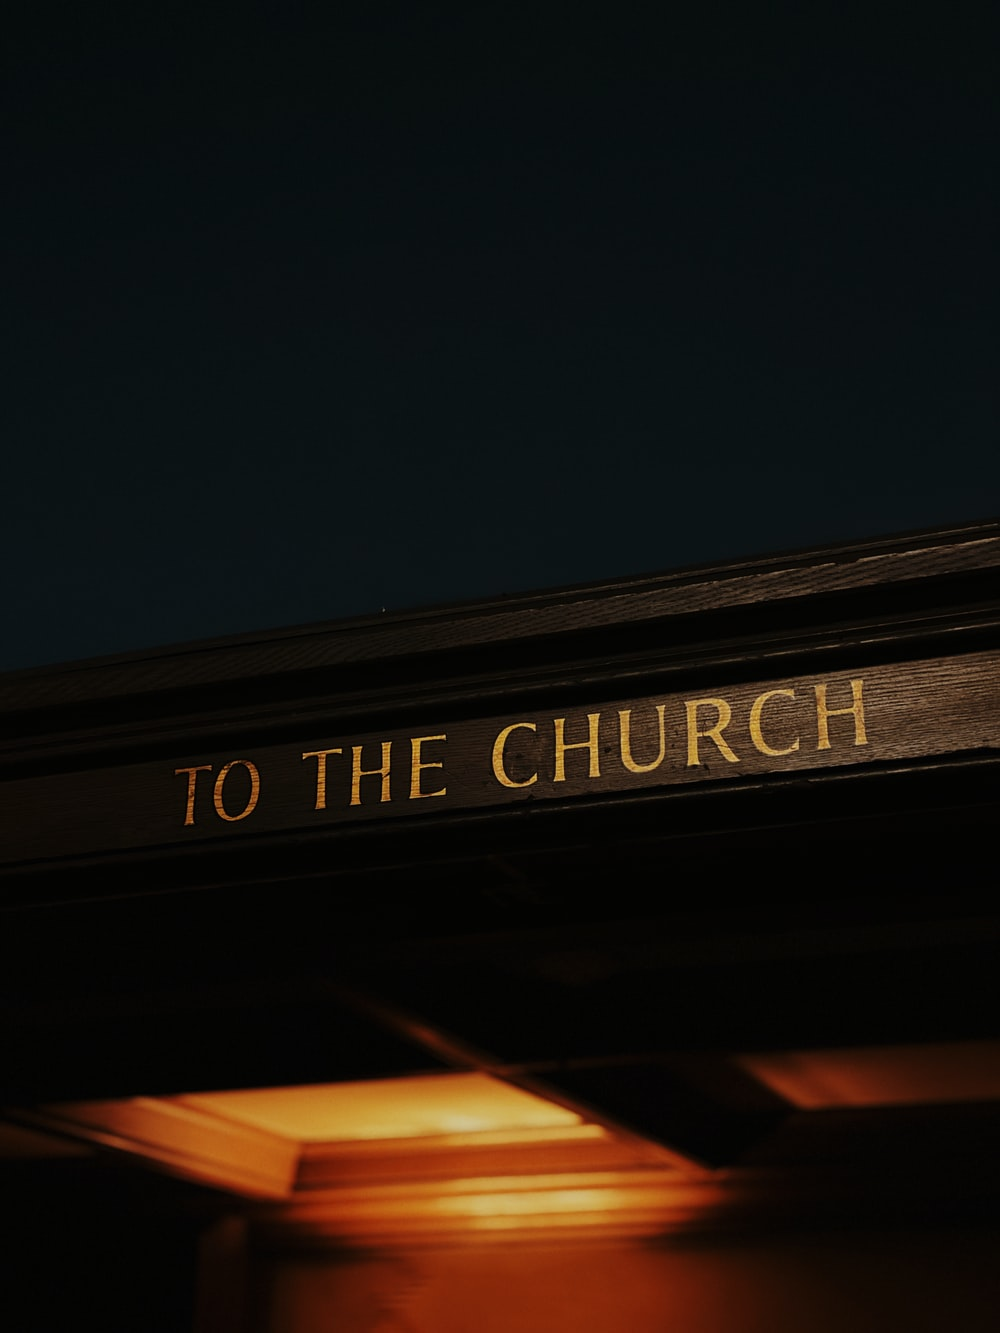 to the church text